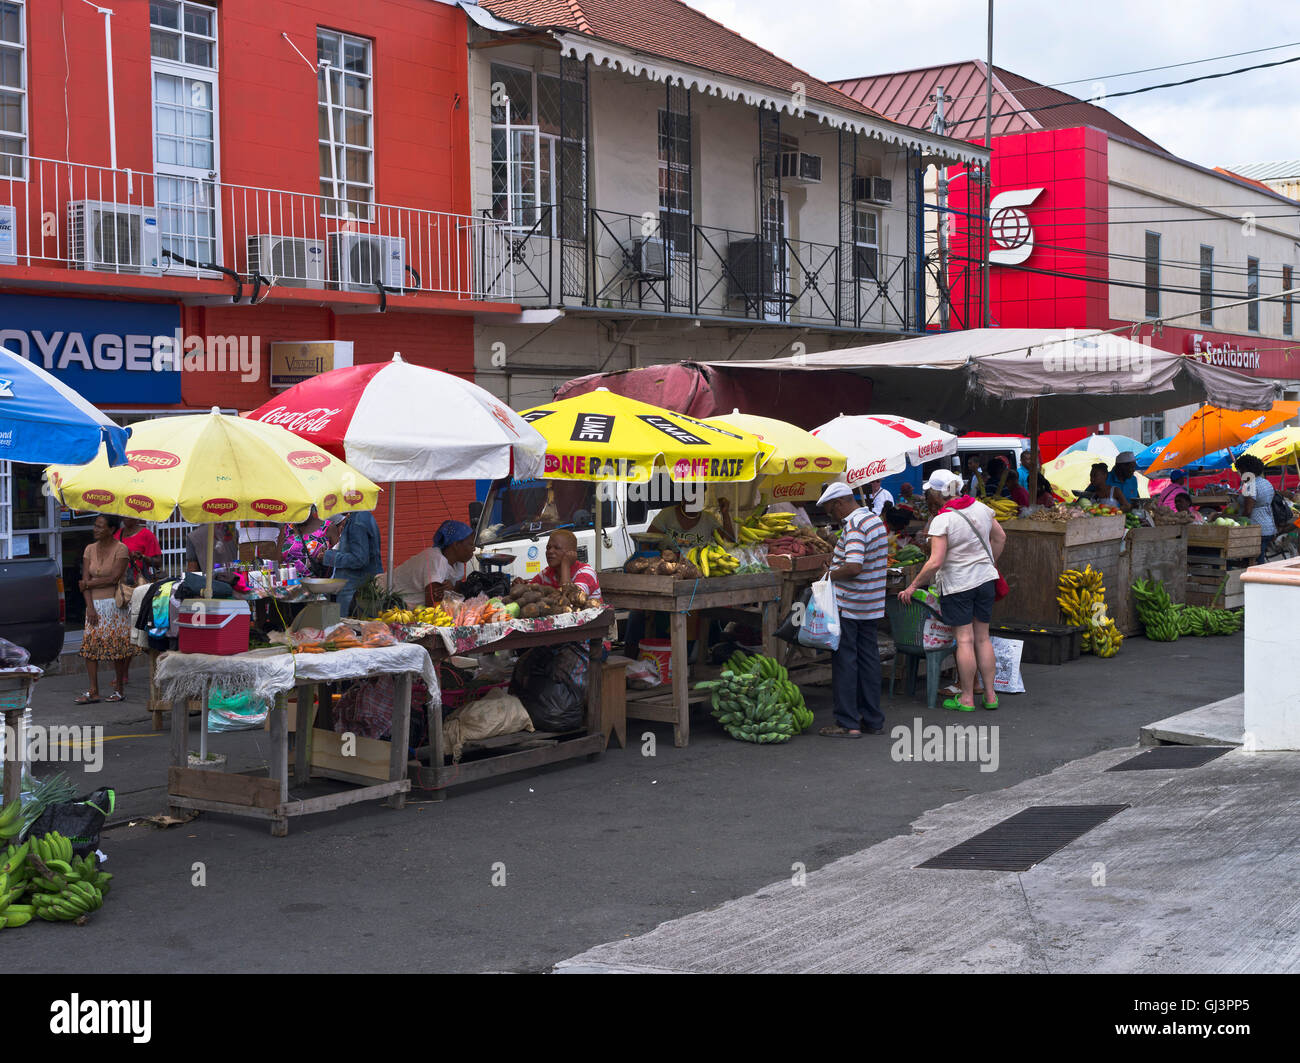 dh St George GRENADA CARIBBEAN Street scene town outdoor market place - Stock Image